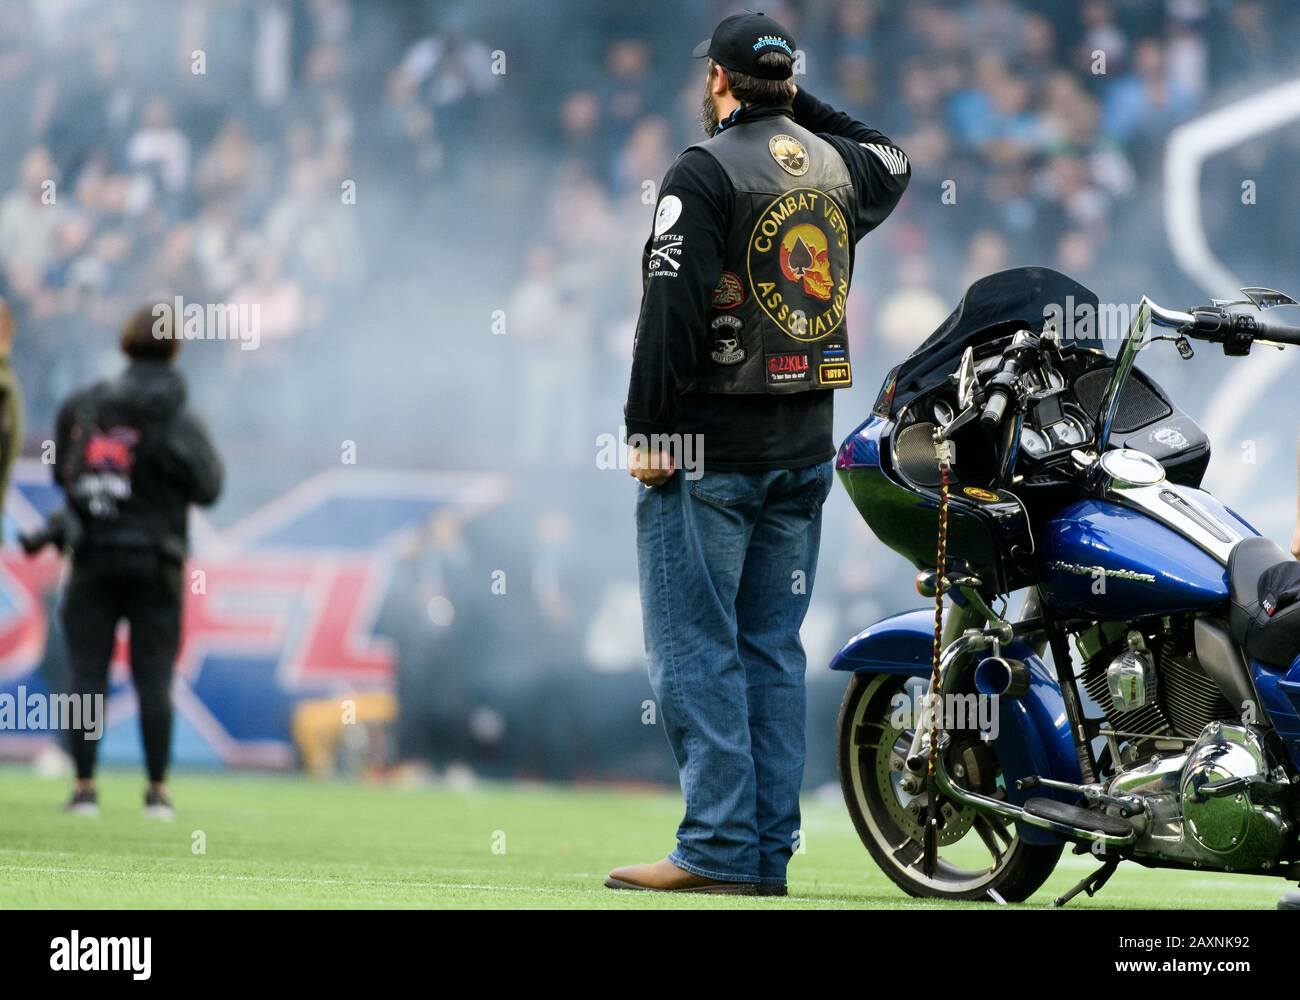 Arlington, Texas, USA. 9th Feb, 2020. Combat Vet's Association member solutes the flag during the national anthem at the XFL game between St. Louis Battlehawks and the Dallas Renegades at Globe Life Park in Arlington, Texas. Matthew Lynch/CSM/Alamy Live News Stock Photo